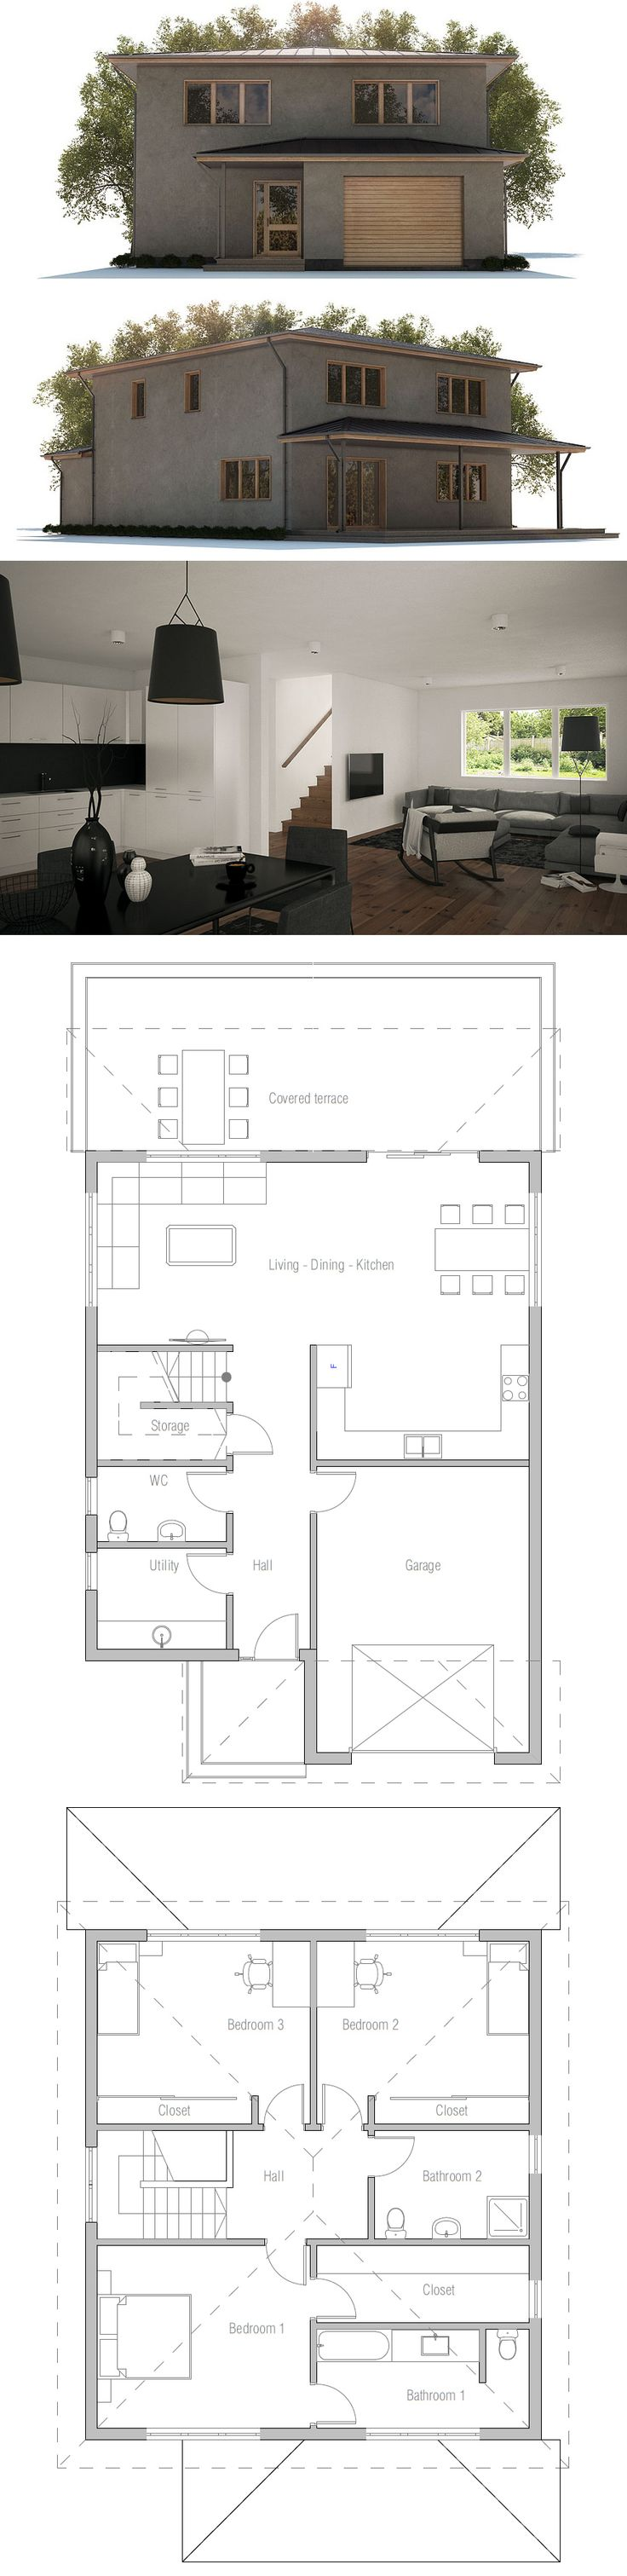 flor plan: 3 bdrms ... add closet in hall, flip kitchen and living/dining area, add big shower in master bath